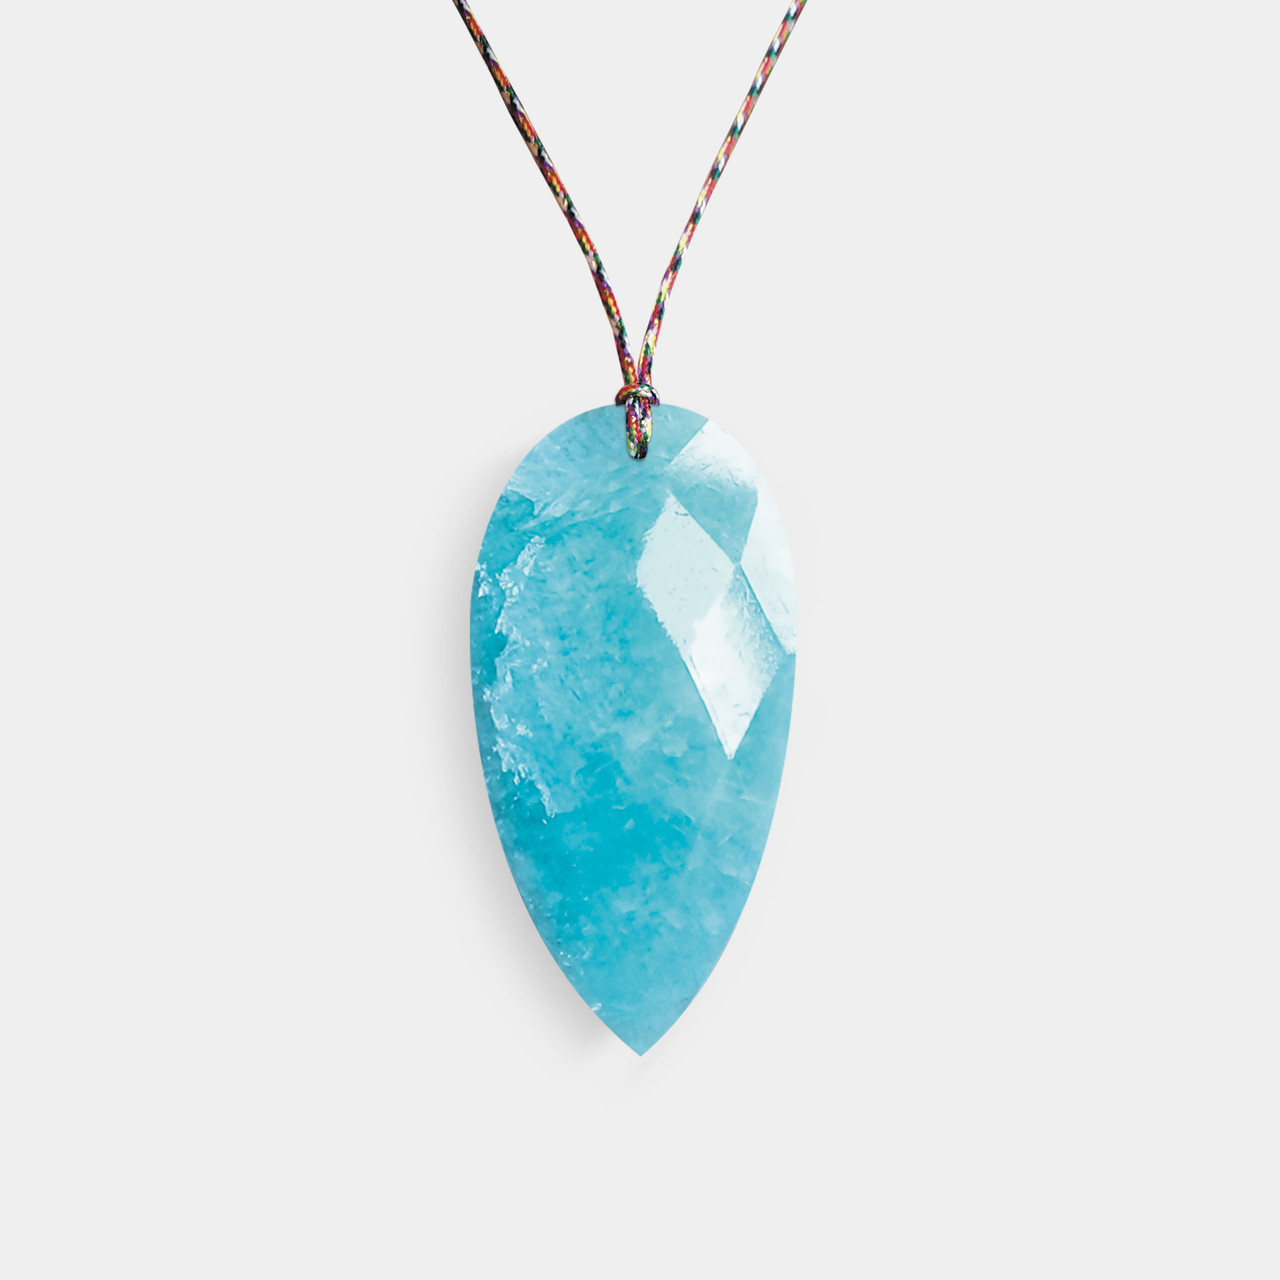 Collier Homme Cordon Amazonite, Collier Charly Homme Amazonite